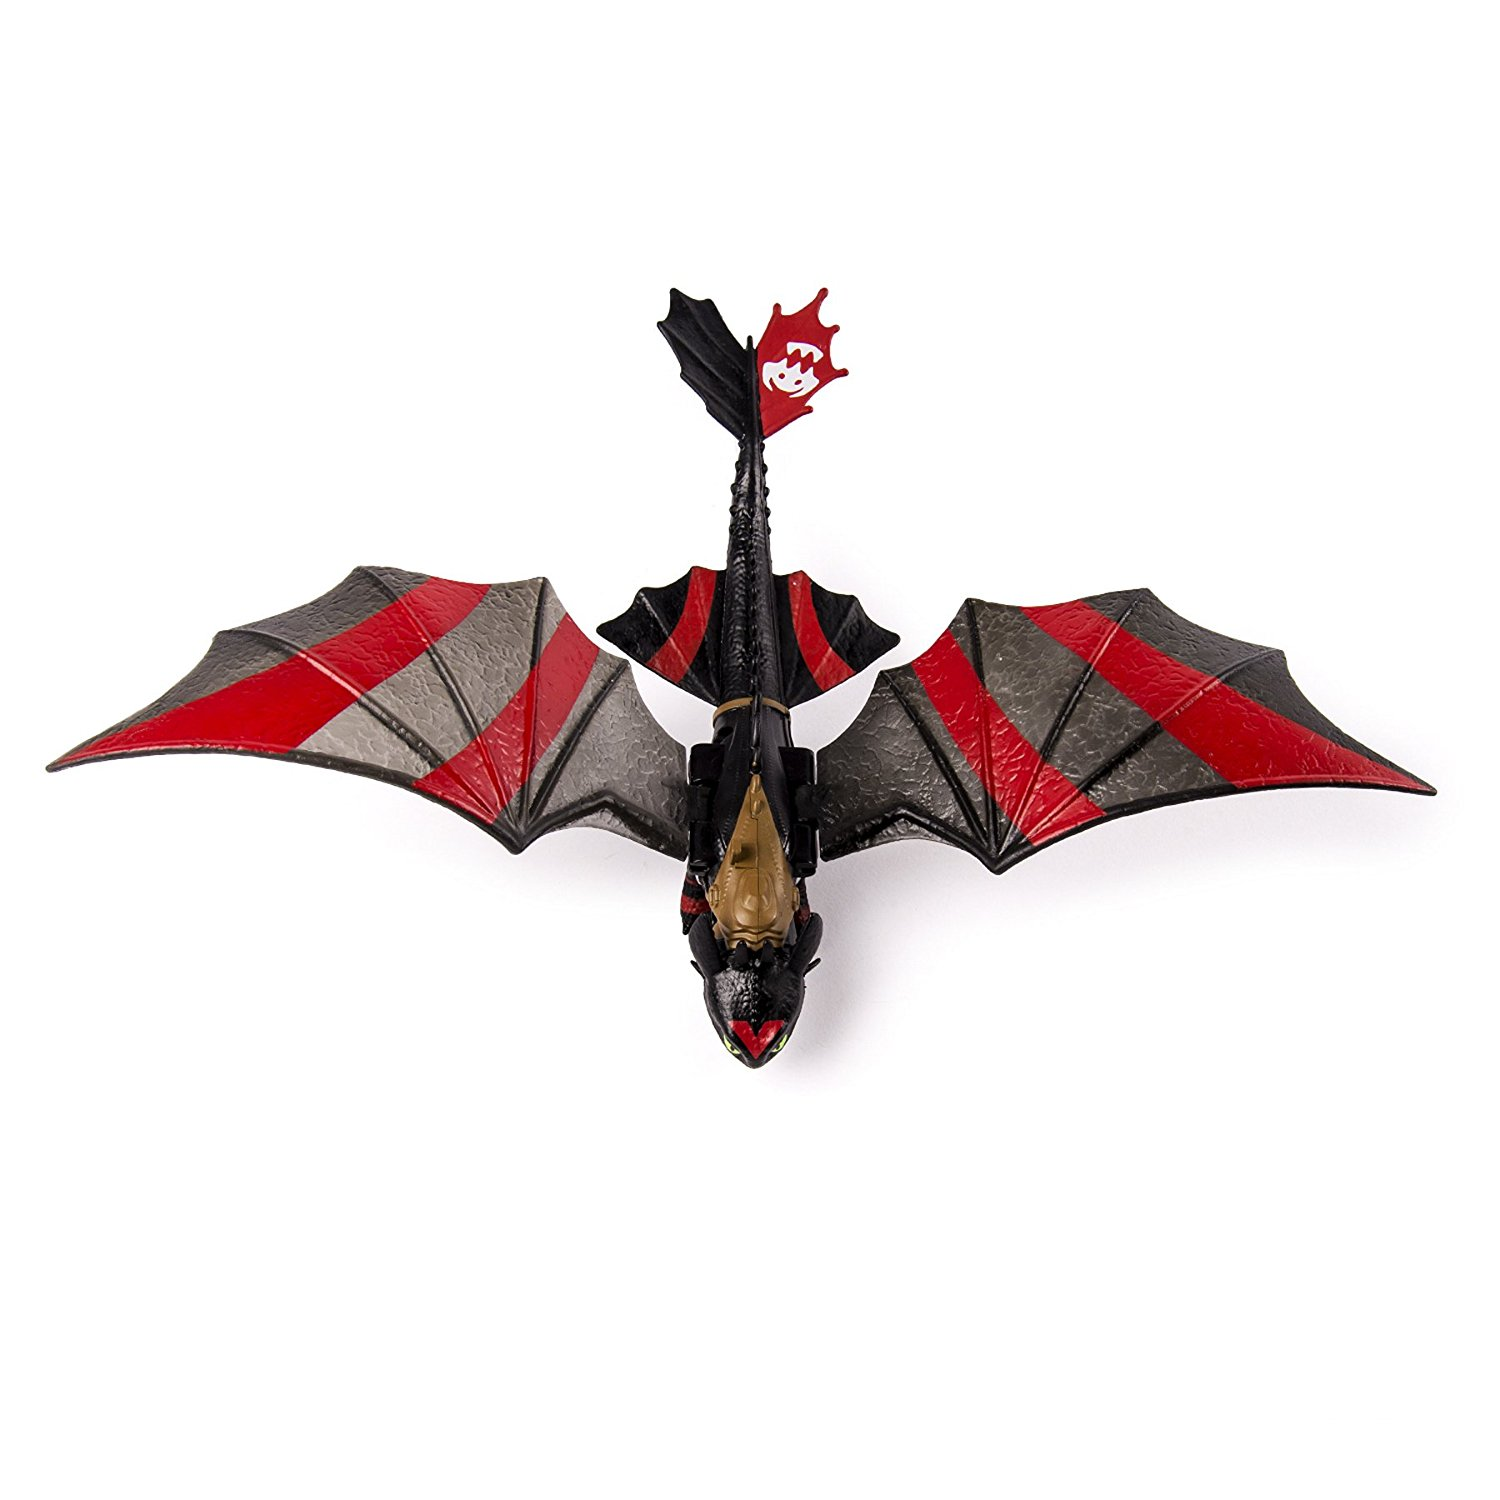 1500x1500 Dreamworks Dragons, How To Train Your Dragon 2